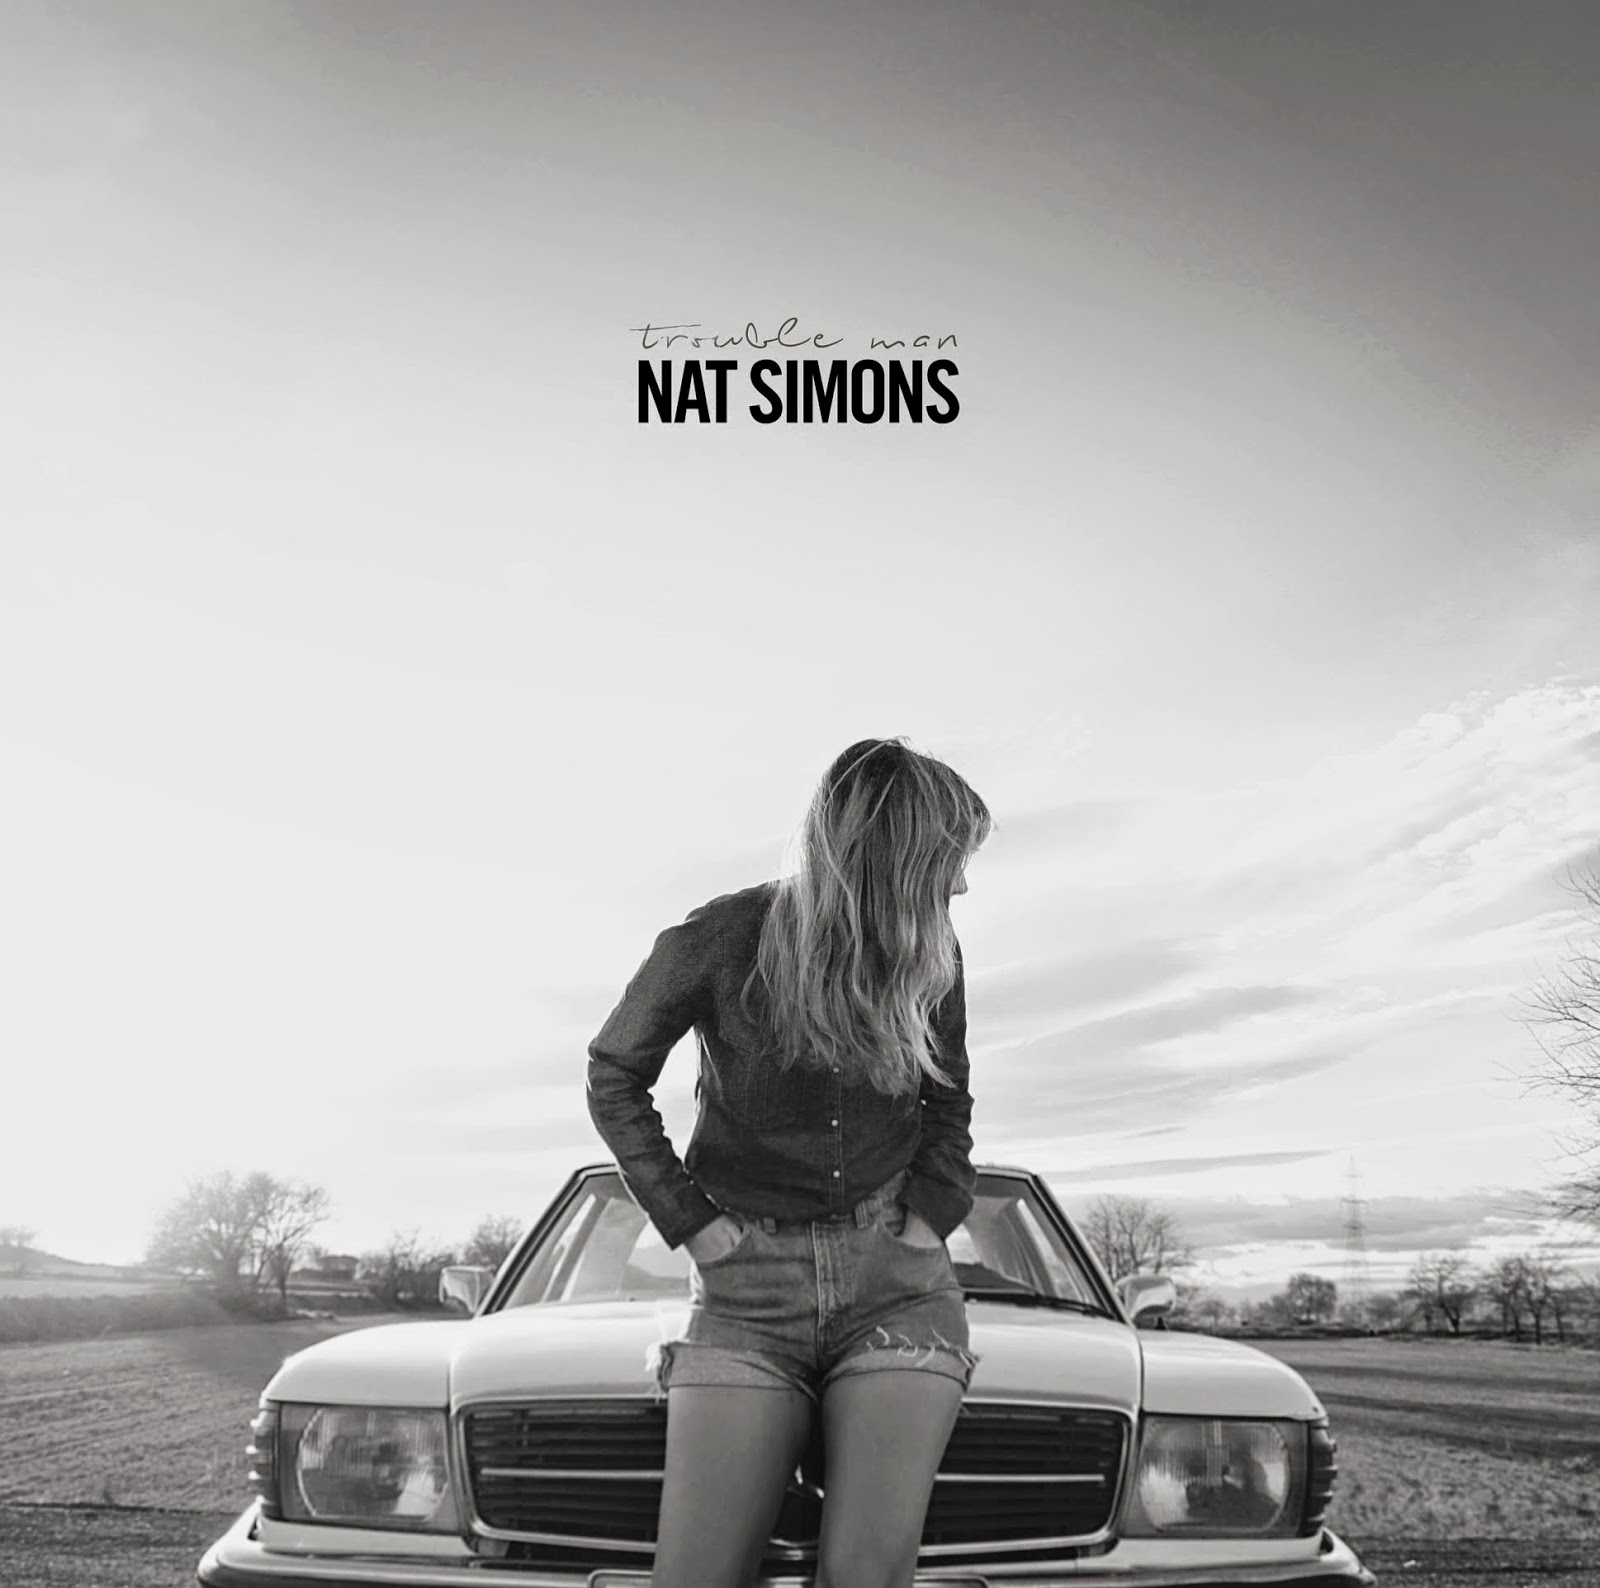 Nat Simons Trouble man EP